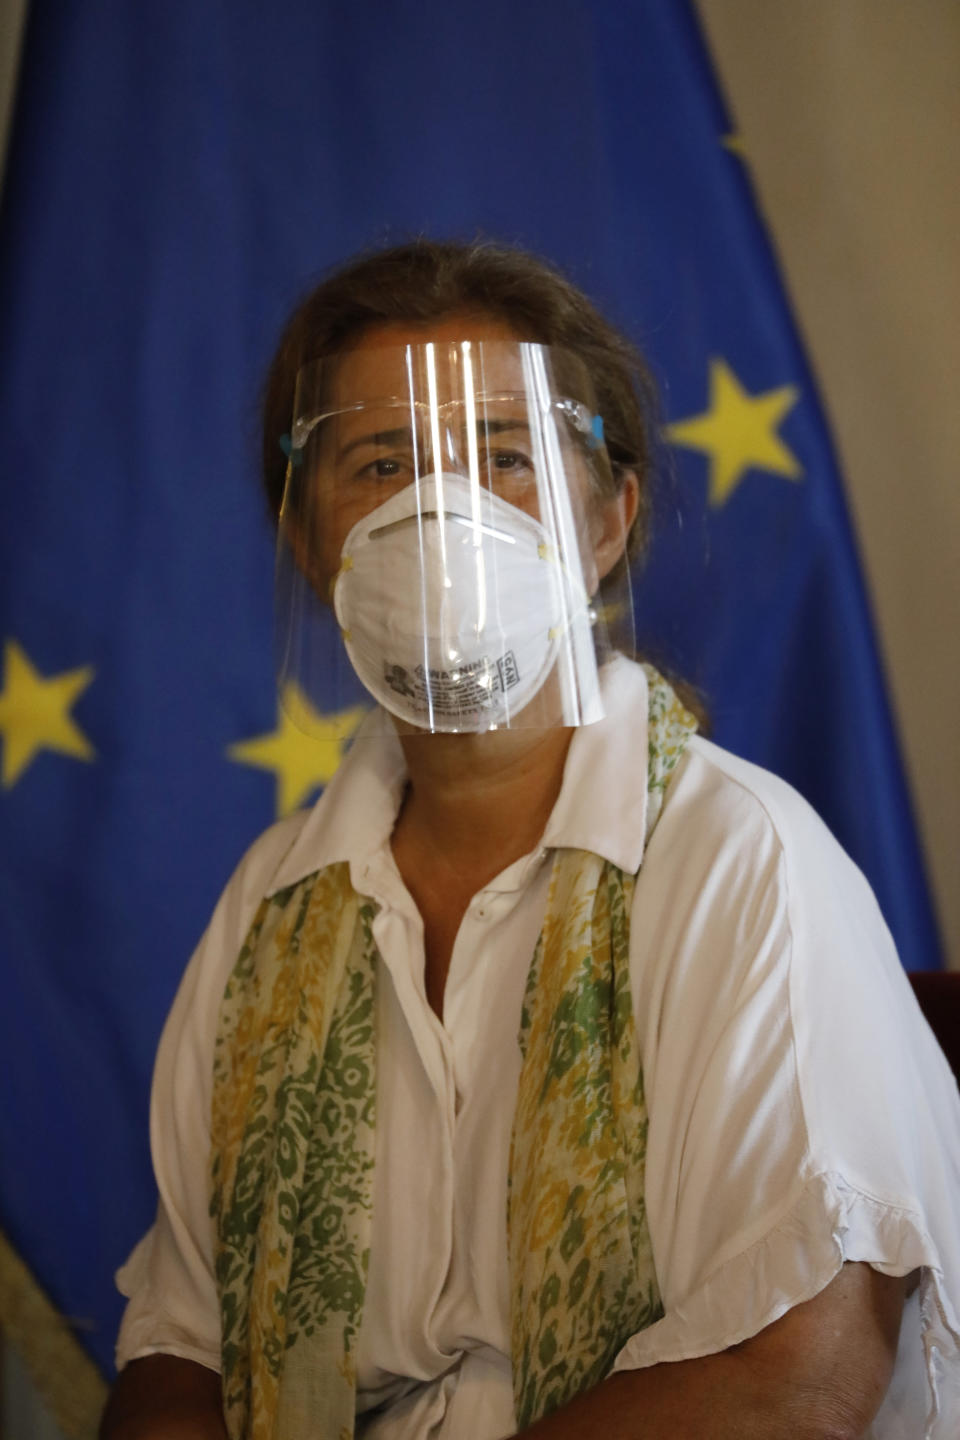 """European Union Ambassador to Venezuela Isabel Brilhante Pedrosa wears a mask and face shield amid the COVID-19 pandemic, as she meets with Venezuelan Foreign Minister Jorge Arreaza at his office in Caracas, Venezuela, Wednesday, Feb. 24, 2021. The meeting was called after the EU sanctioned an additional 19 Venezuelans for """"undermining democracy and the rule of law"""" in Venezuela and the National Assembly declared the EU ambassador """"persona non grata."""" (AP Photo/Ariana Cubillos)"""